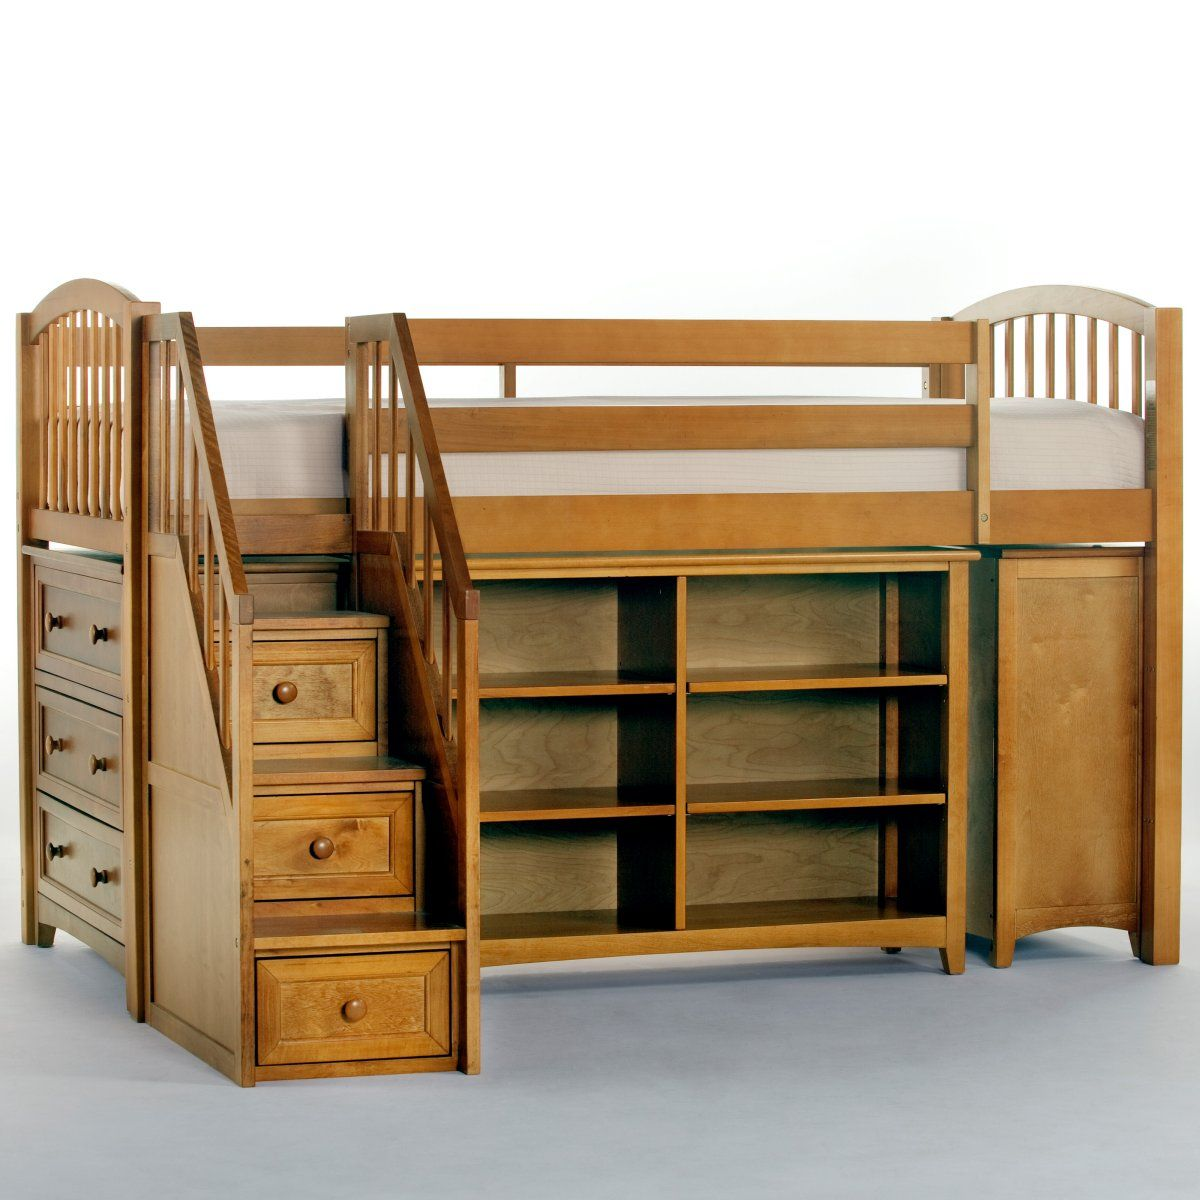 Double loft bed ideas  School House Storage Junior Loft with Stairs  Pecan  FUN FOR KIDS